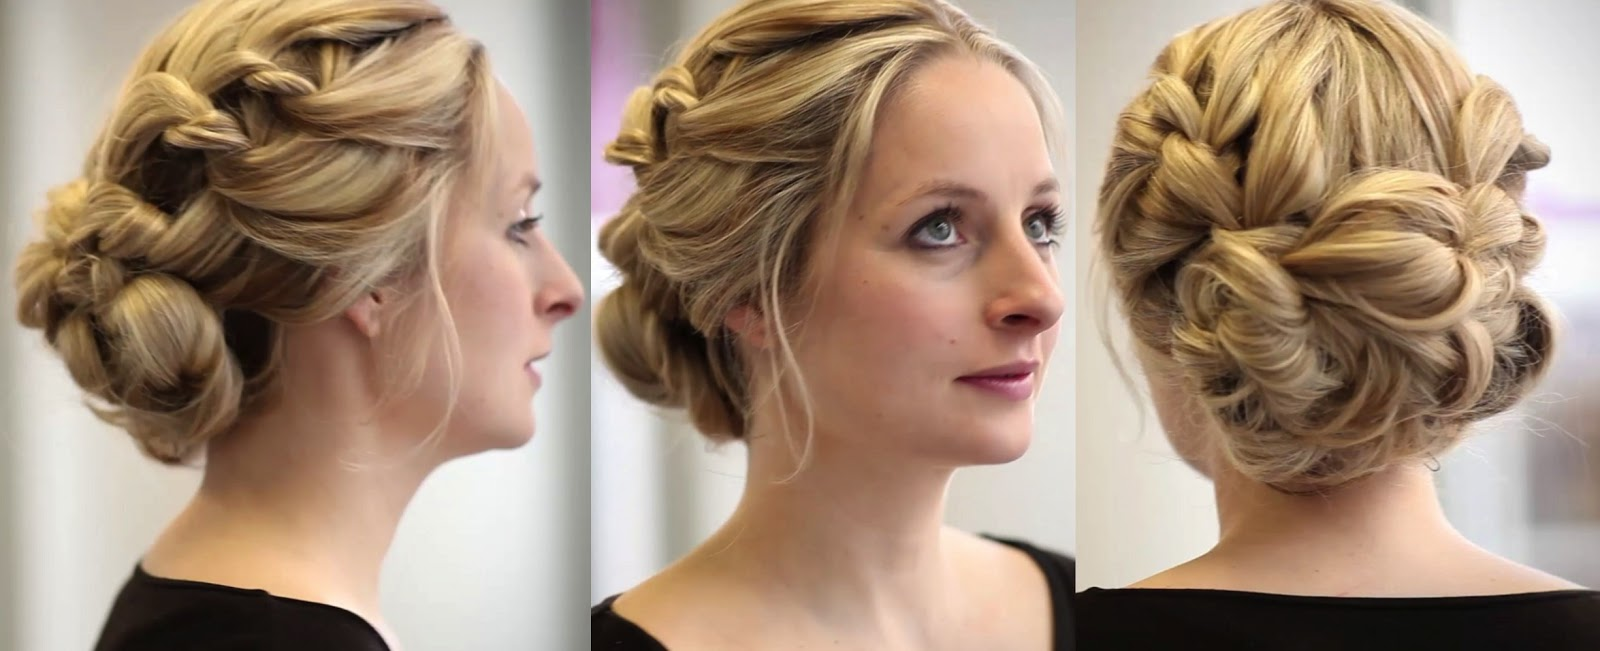 Ghd Hair Styles Classy Whimsical Bridesmaid Hairstyles With Ghd  Bride De Force